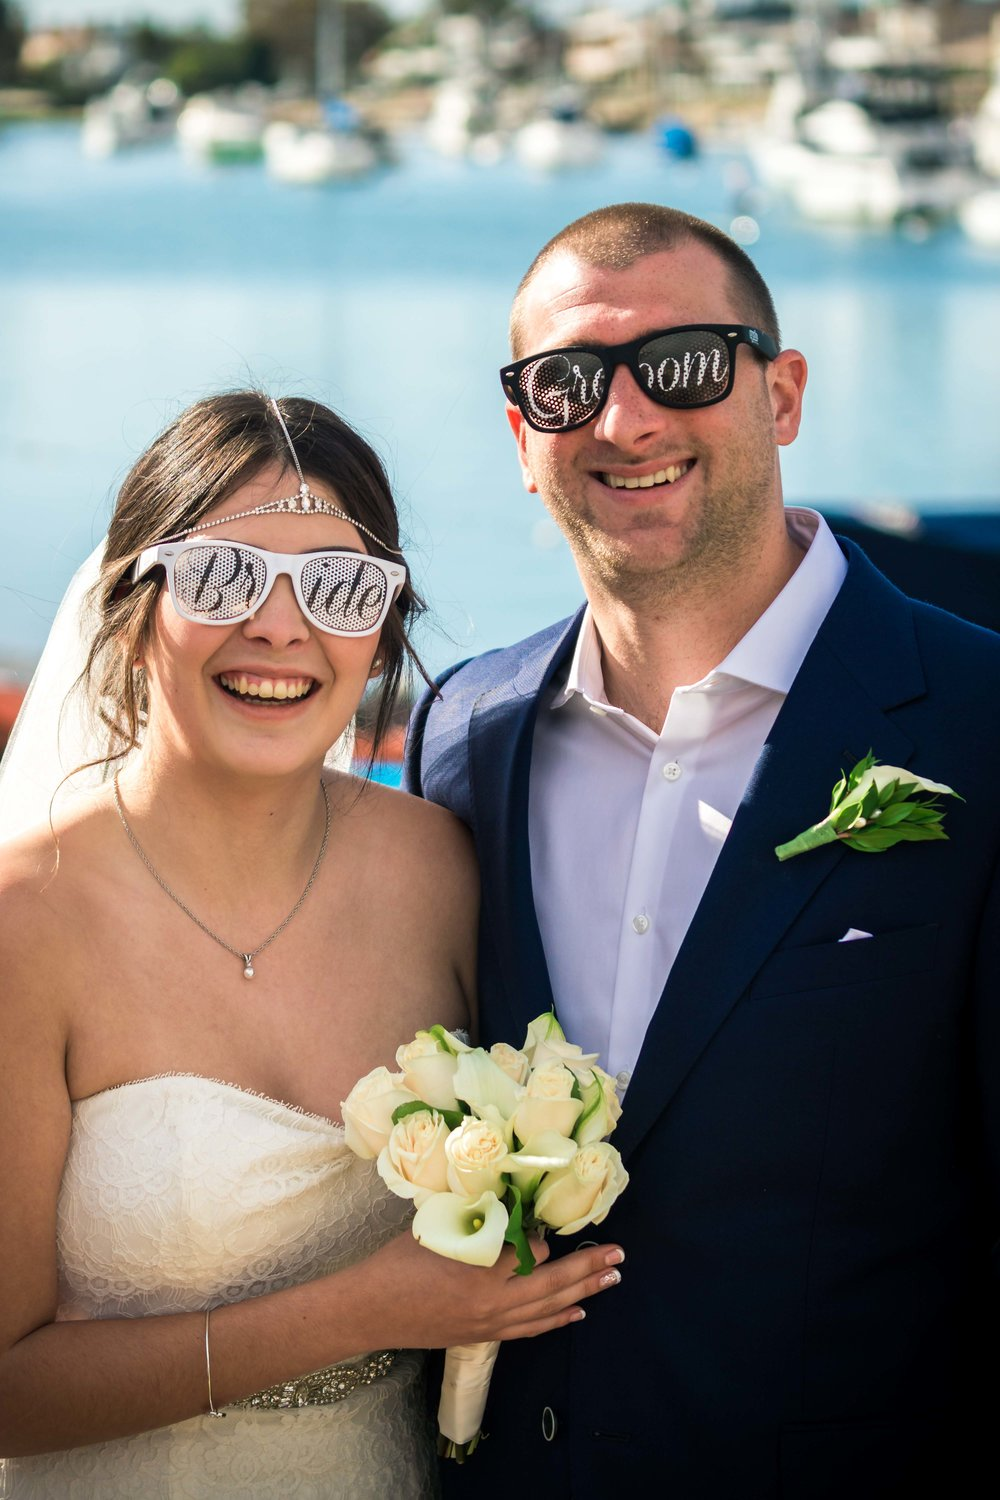 Bride and groom smiling and wearing their cool sunglasses